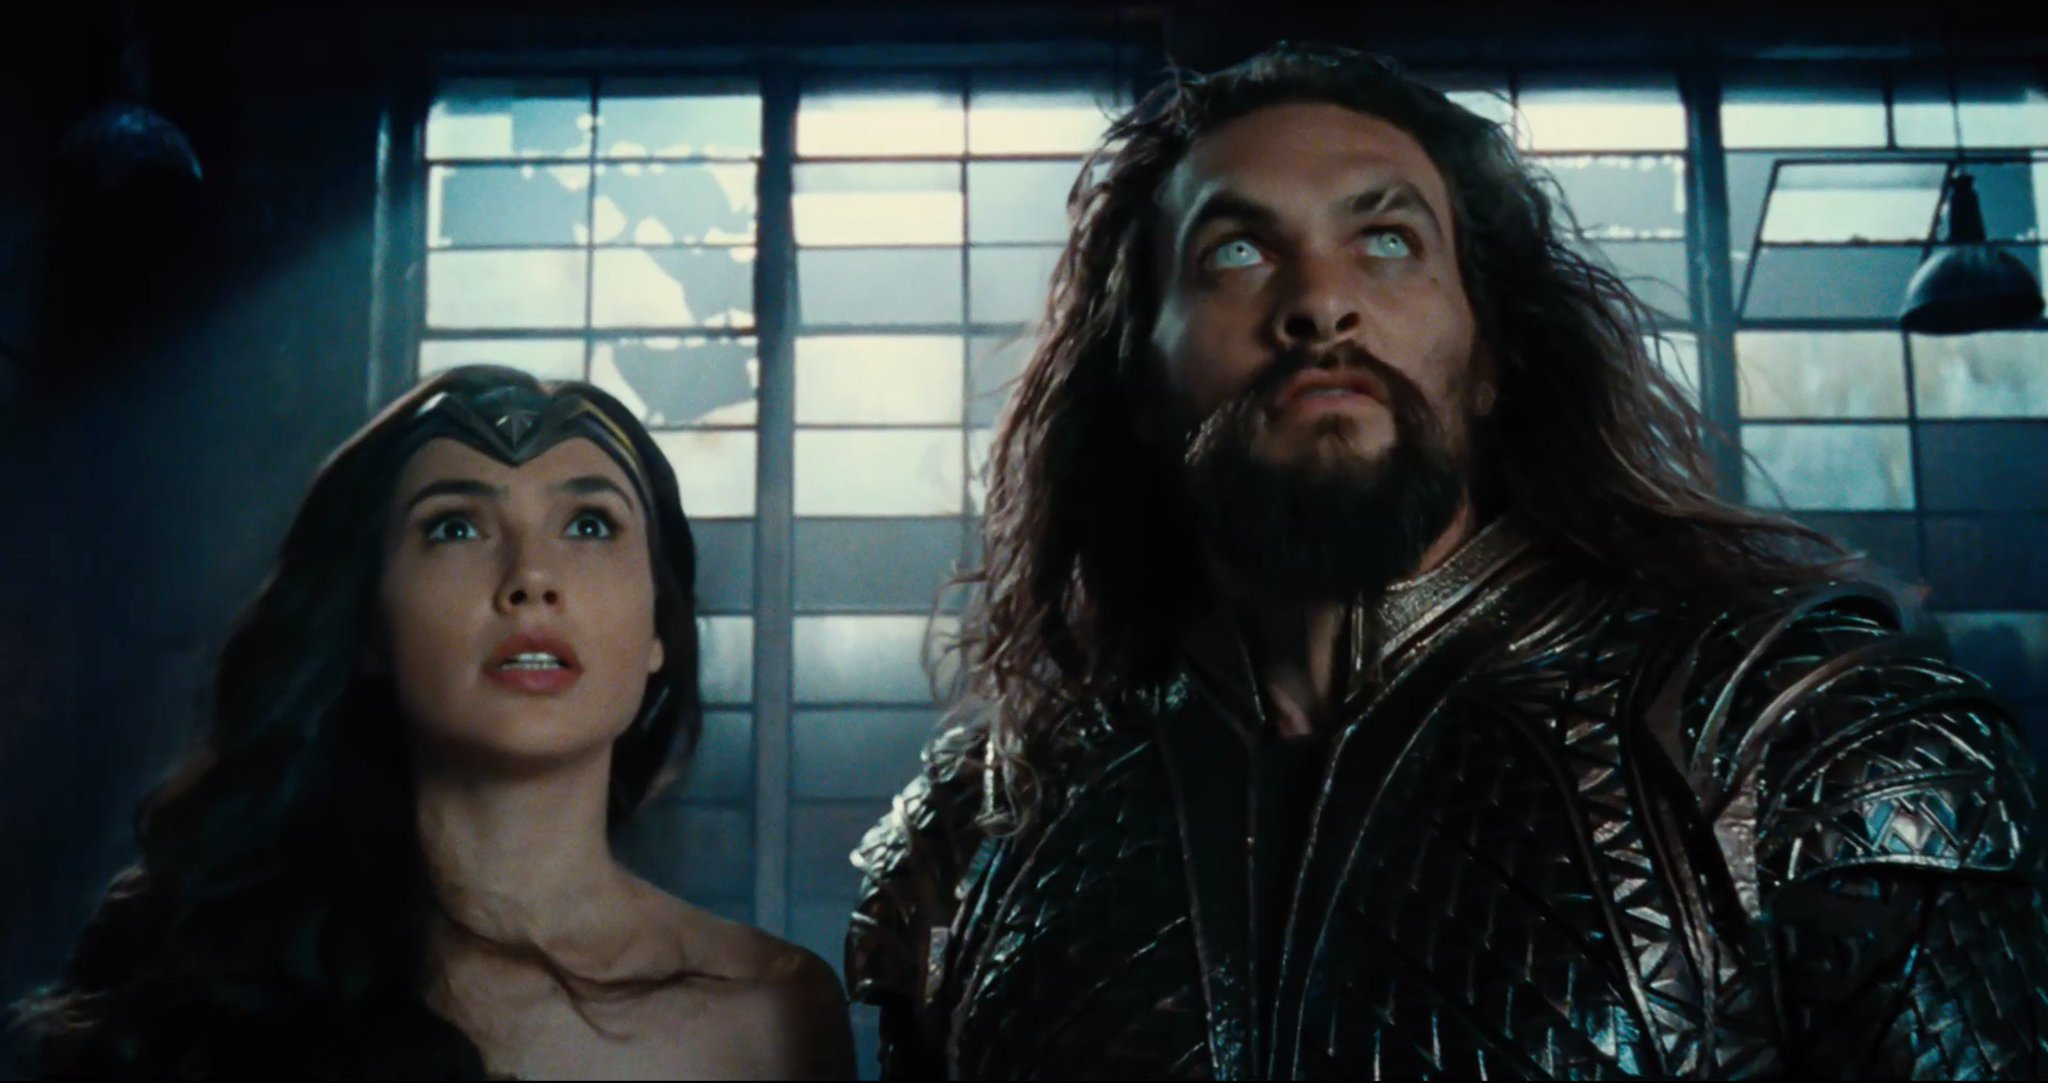 Check out the new trailer and see #JusticeLeague in theaters November 17. https://t.co/oGqsLN3U4X